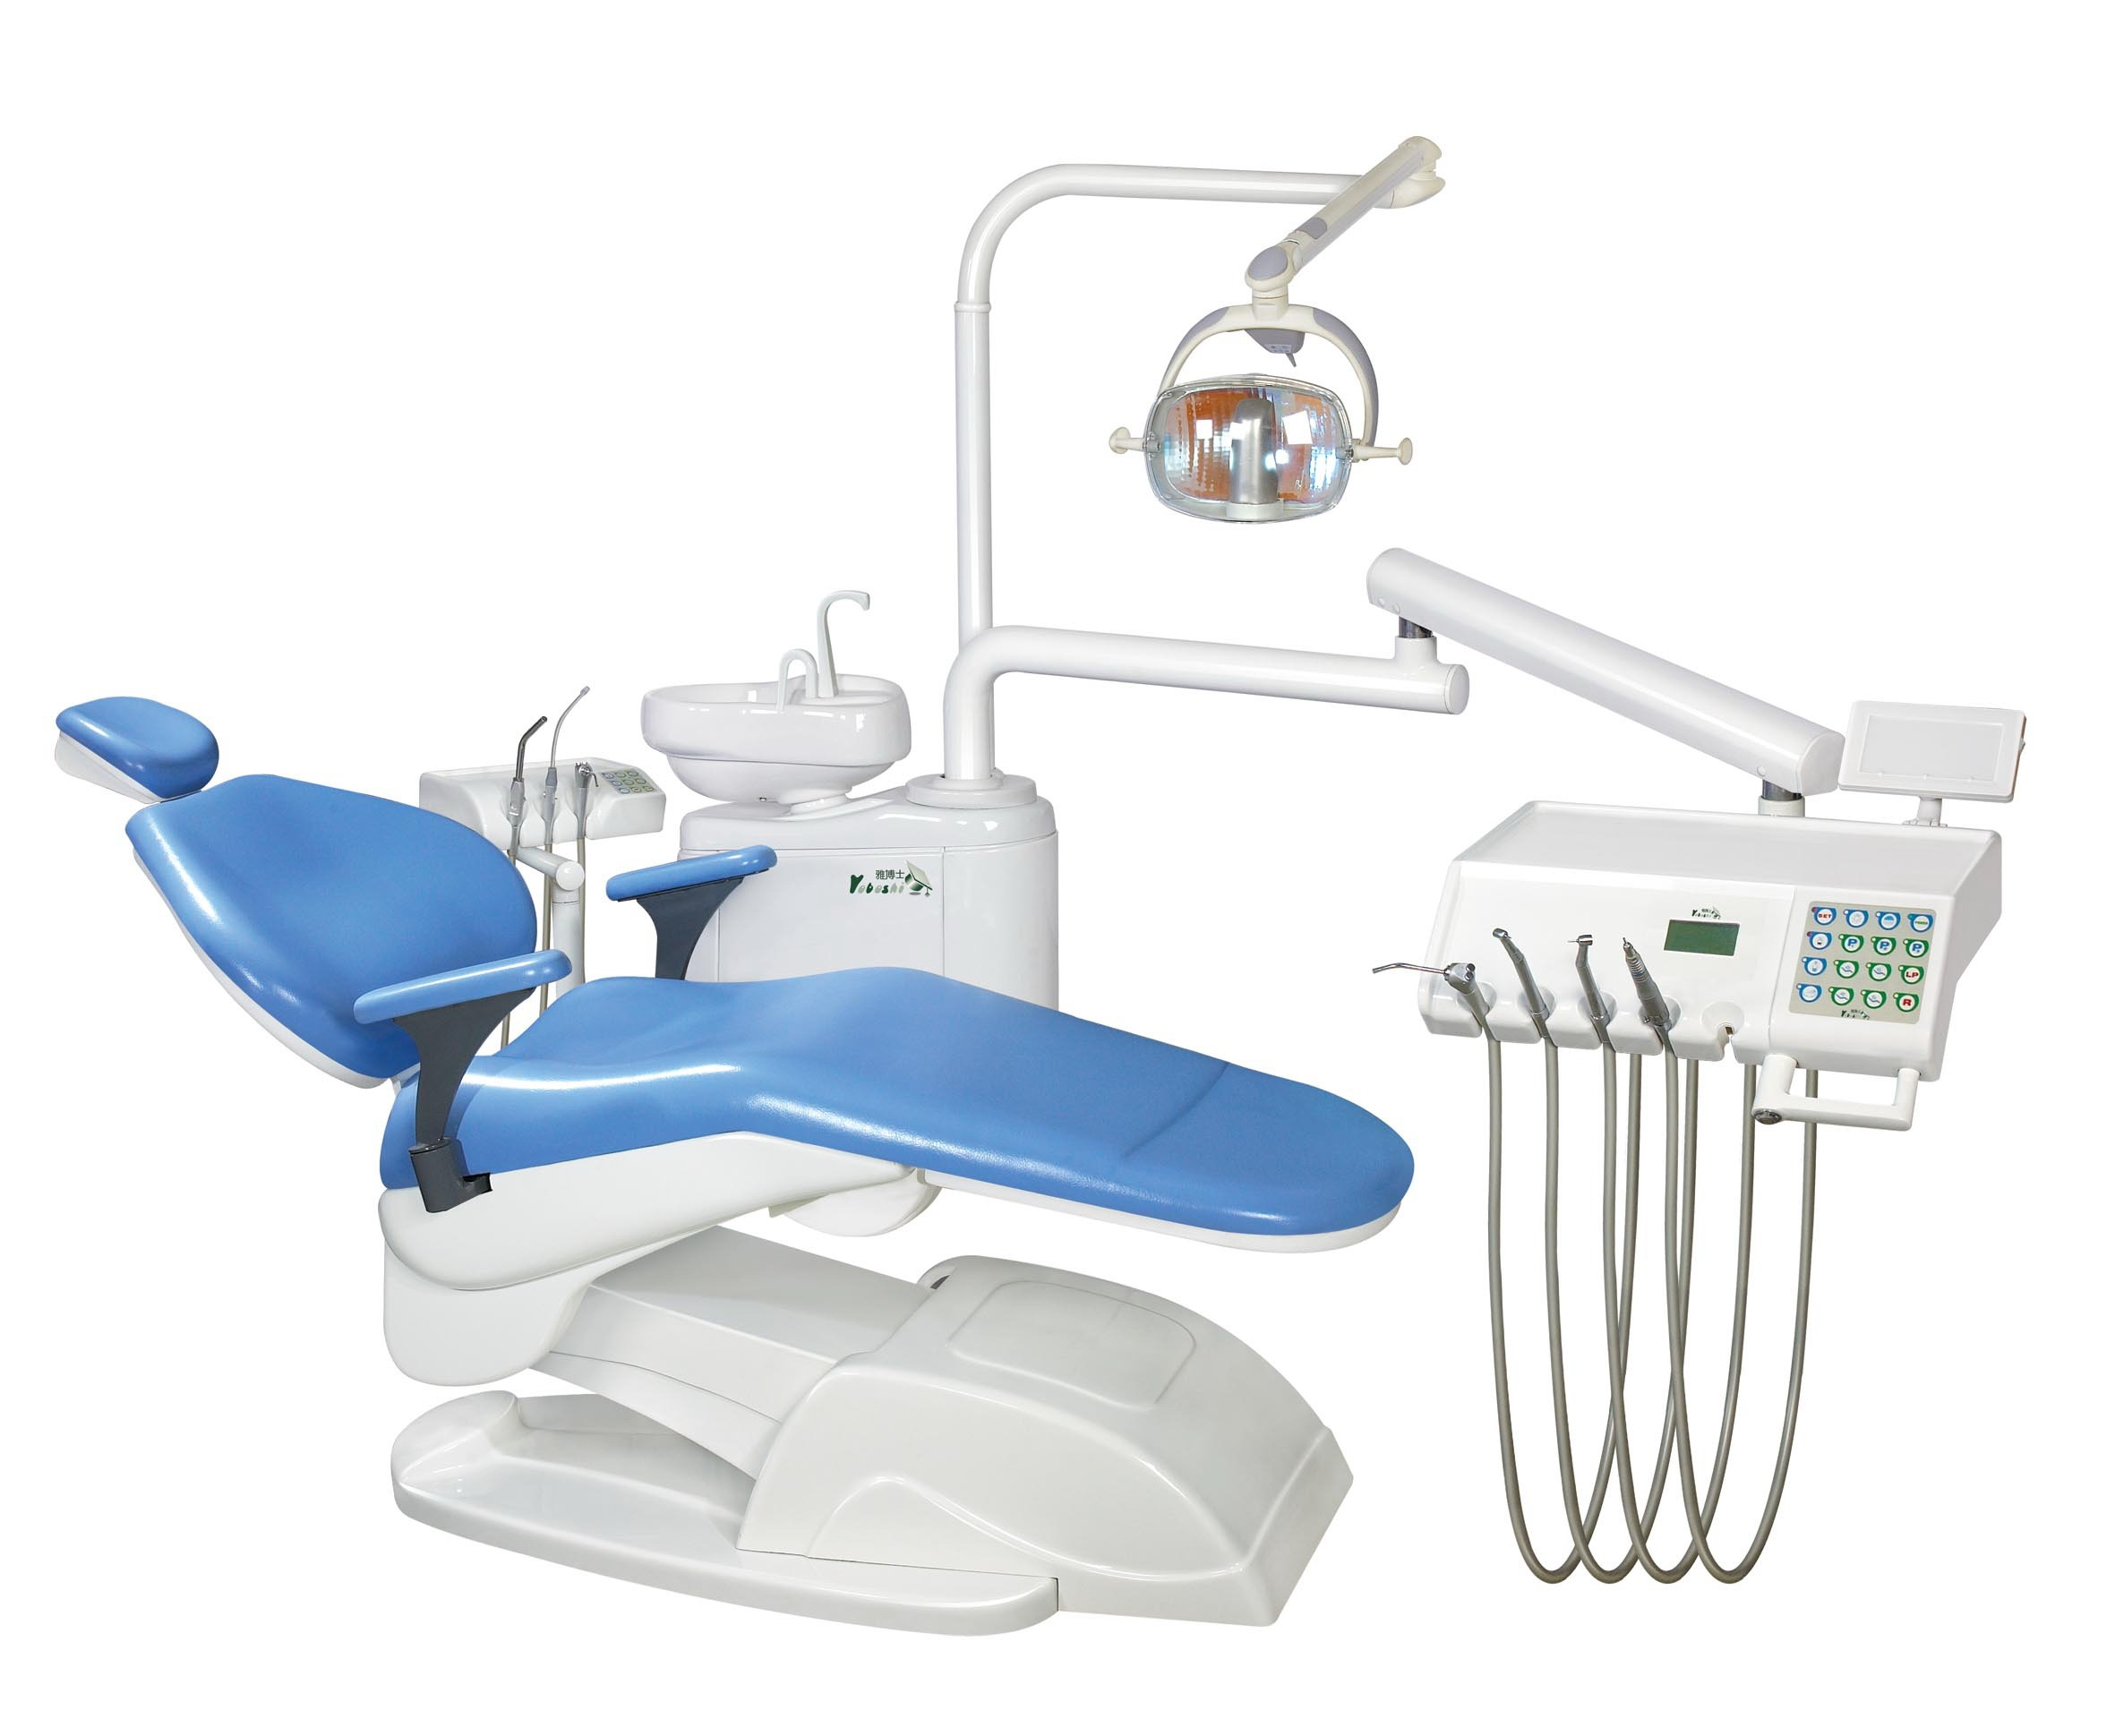 Stern Weber Dental Chair Manual Dental Chair Unit